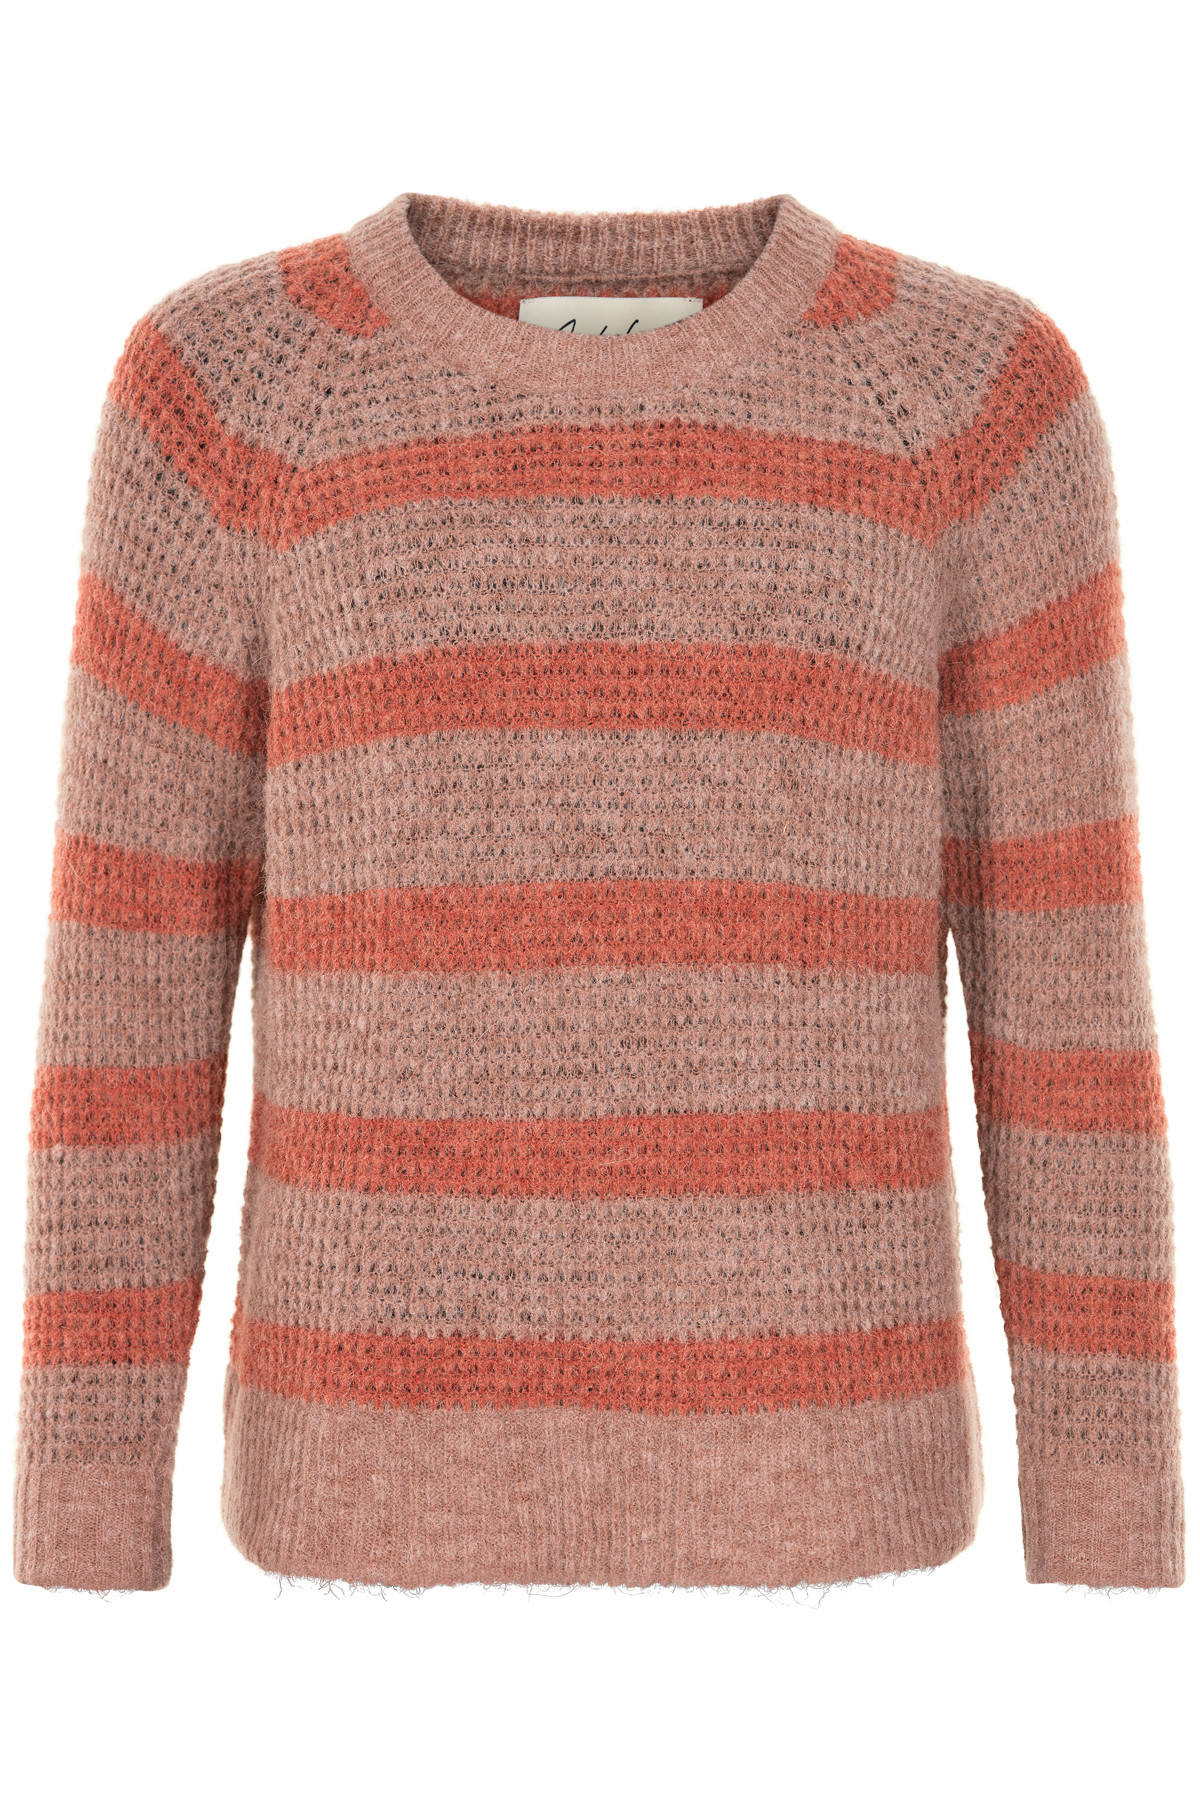 Image of   AND LESS BAMBINA PULLOVER 5419202 (Burlwood, M)